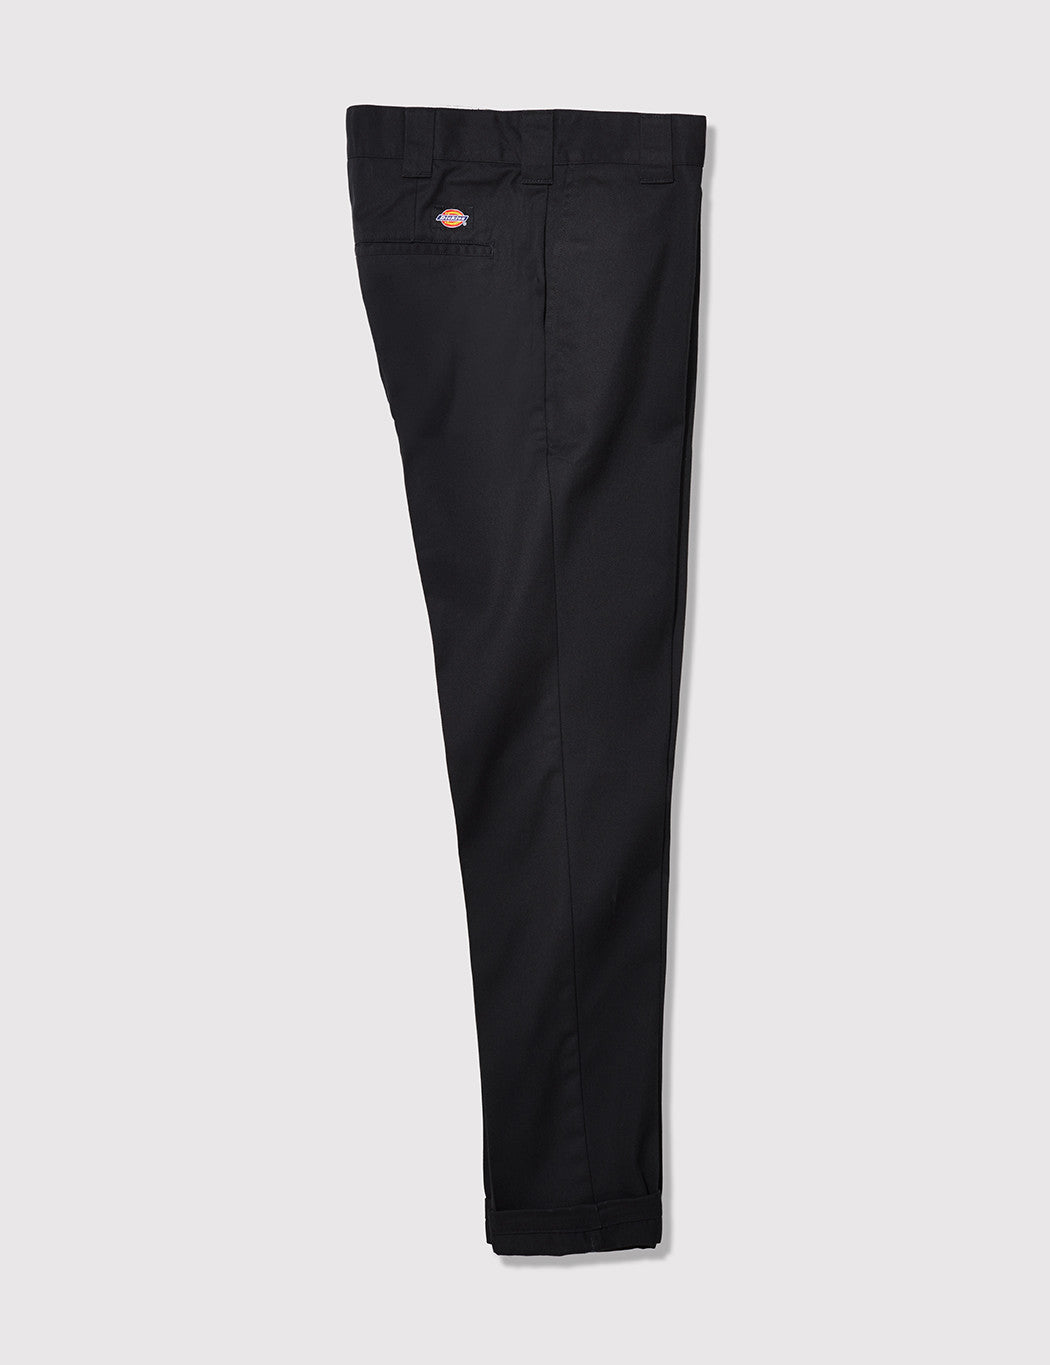 Dickies 872 Work Pants (Slim) - Black